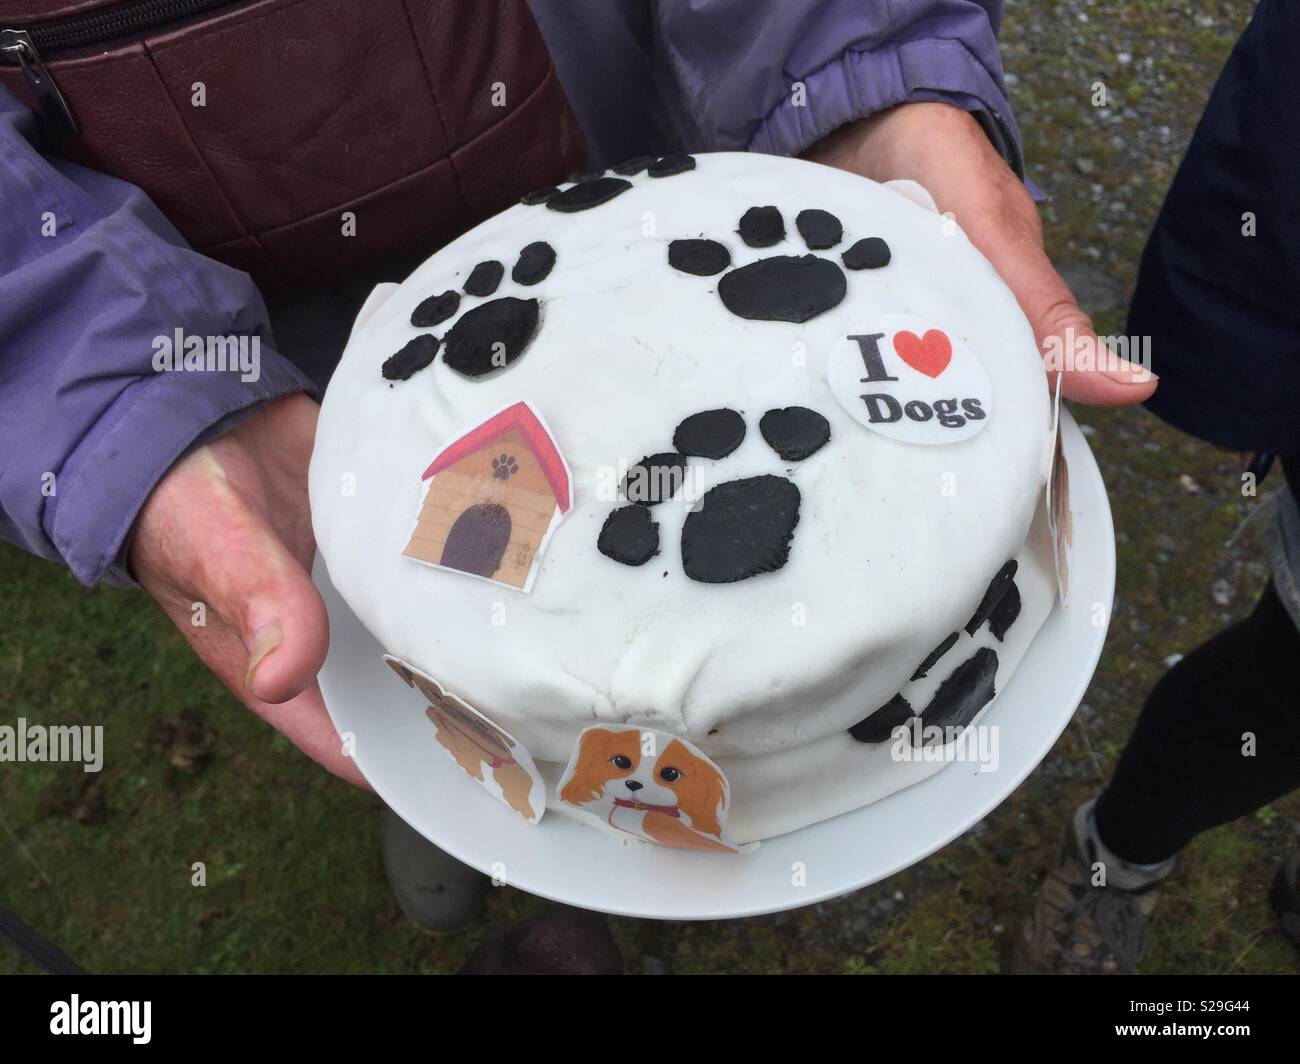 Dog Design Birthday Cake